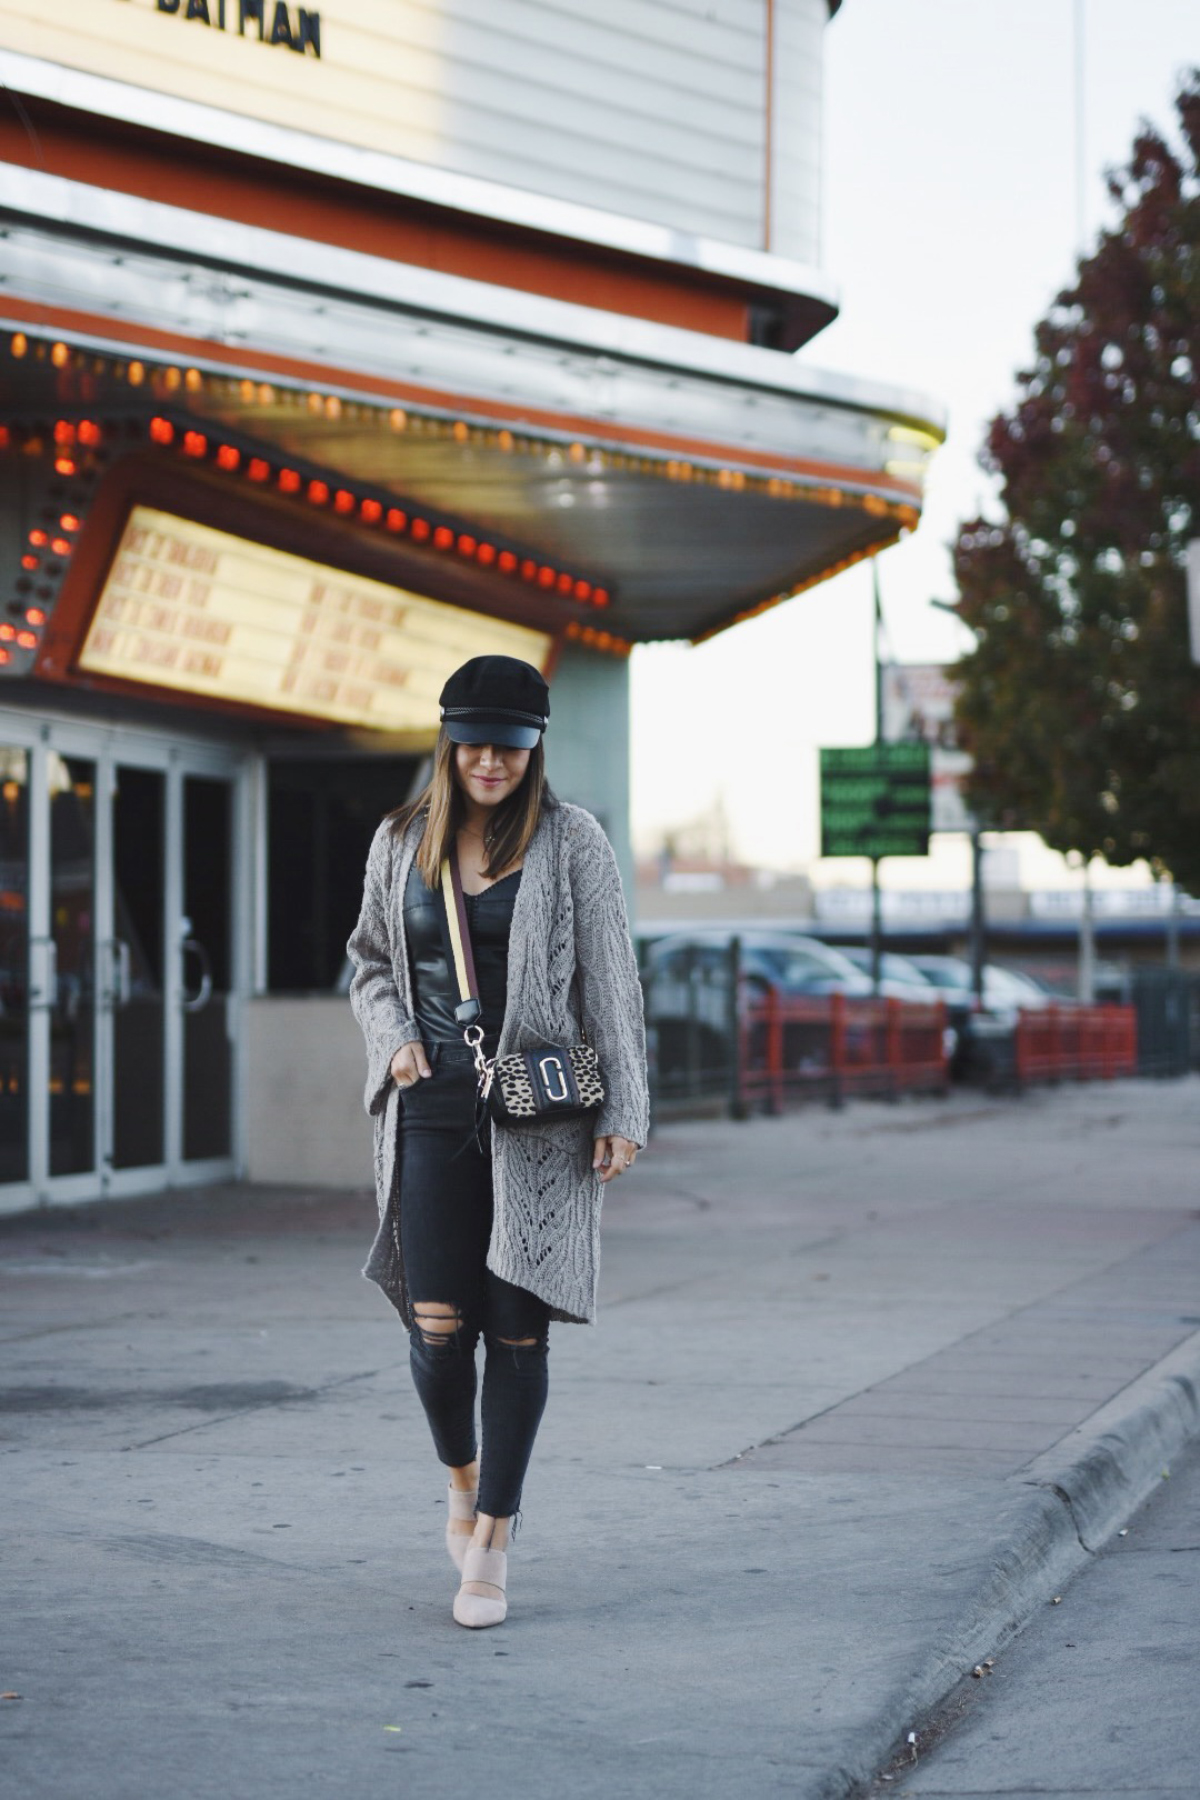 Carolina Hellal of Chic Talk wearing an h&m fisherman cap, Marc jacobs crossbody bag, madewell jeans, chicwish cardigan and nude mules